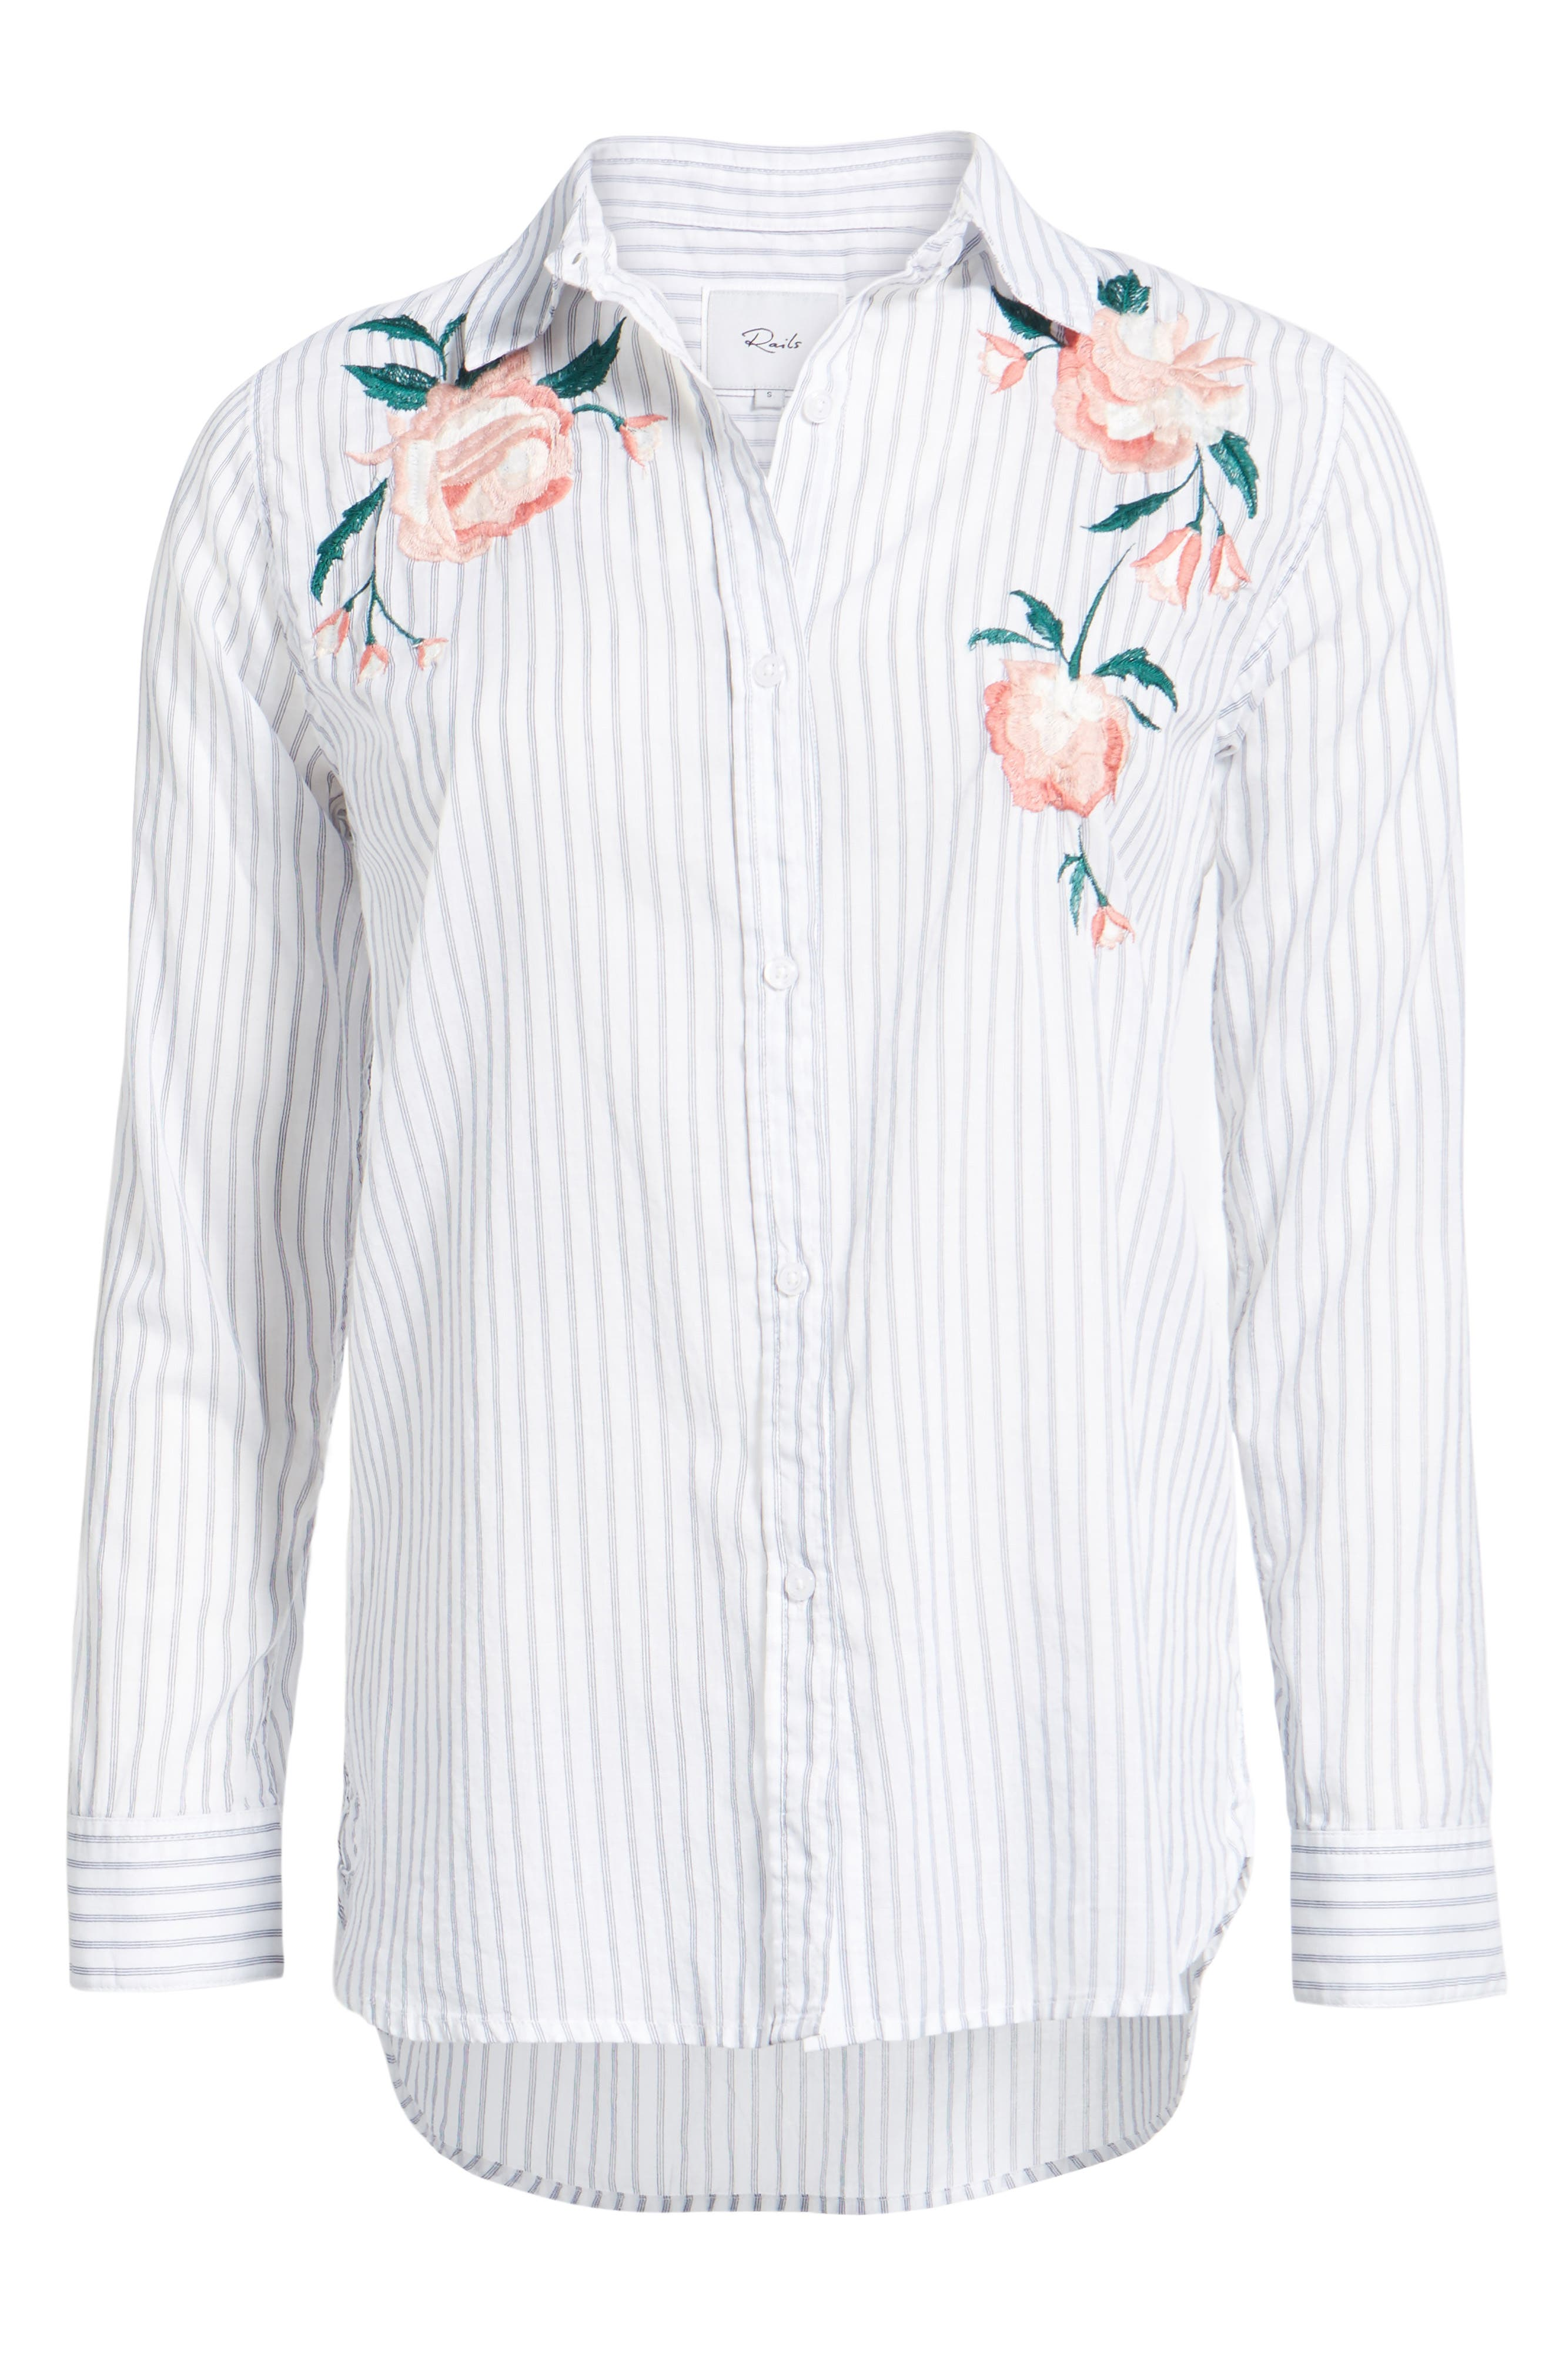 Nevin Embroidered Shirt,                             Alternate thumbnail 6, color,                             STRIPE PINK FLORAL EMBROIDERY